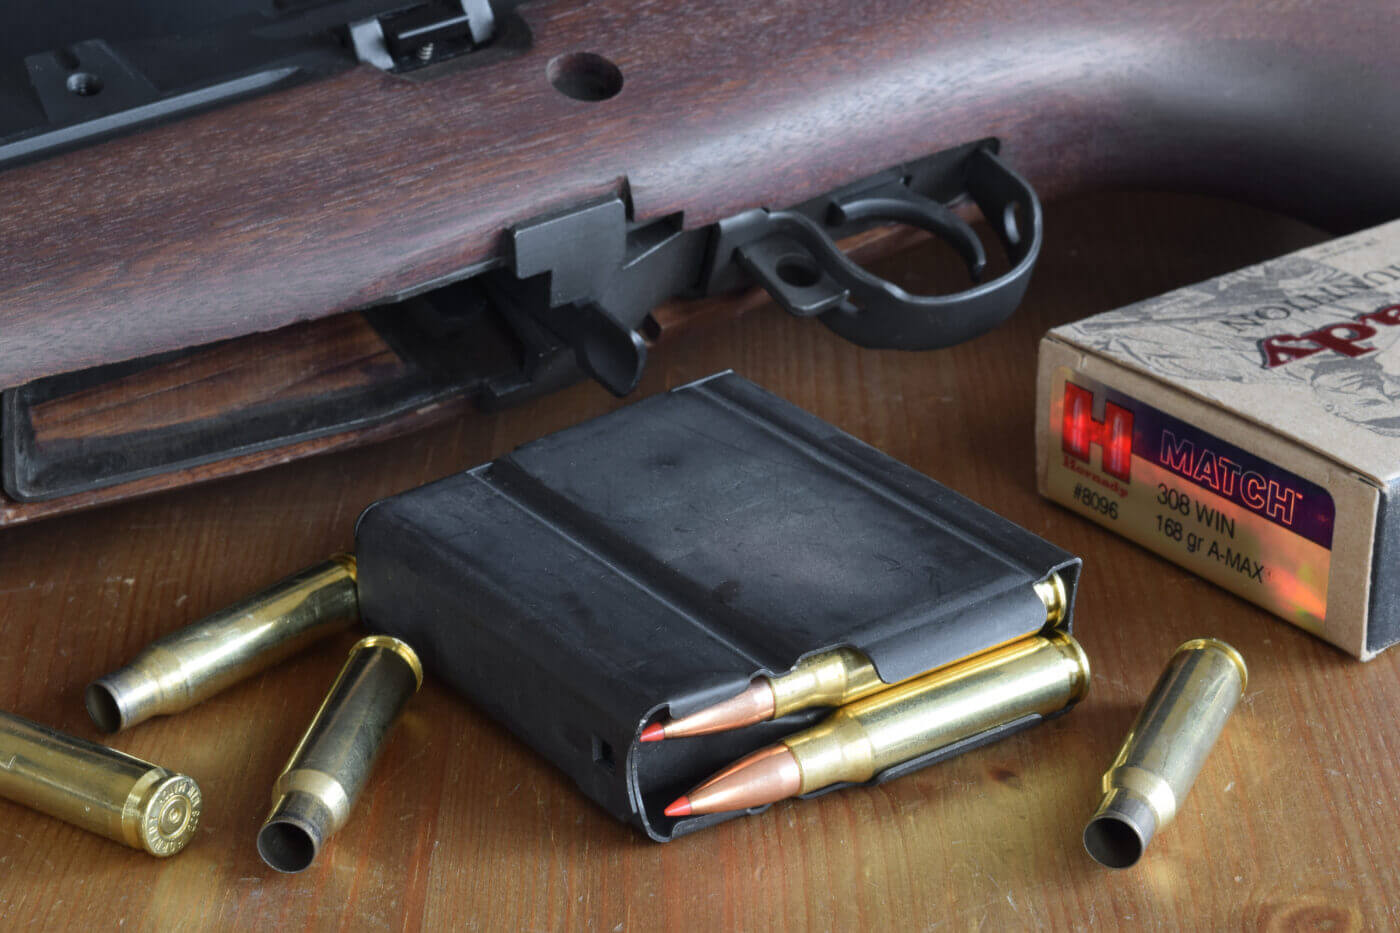 .308 ammo in a rifle magazine with rifle in background